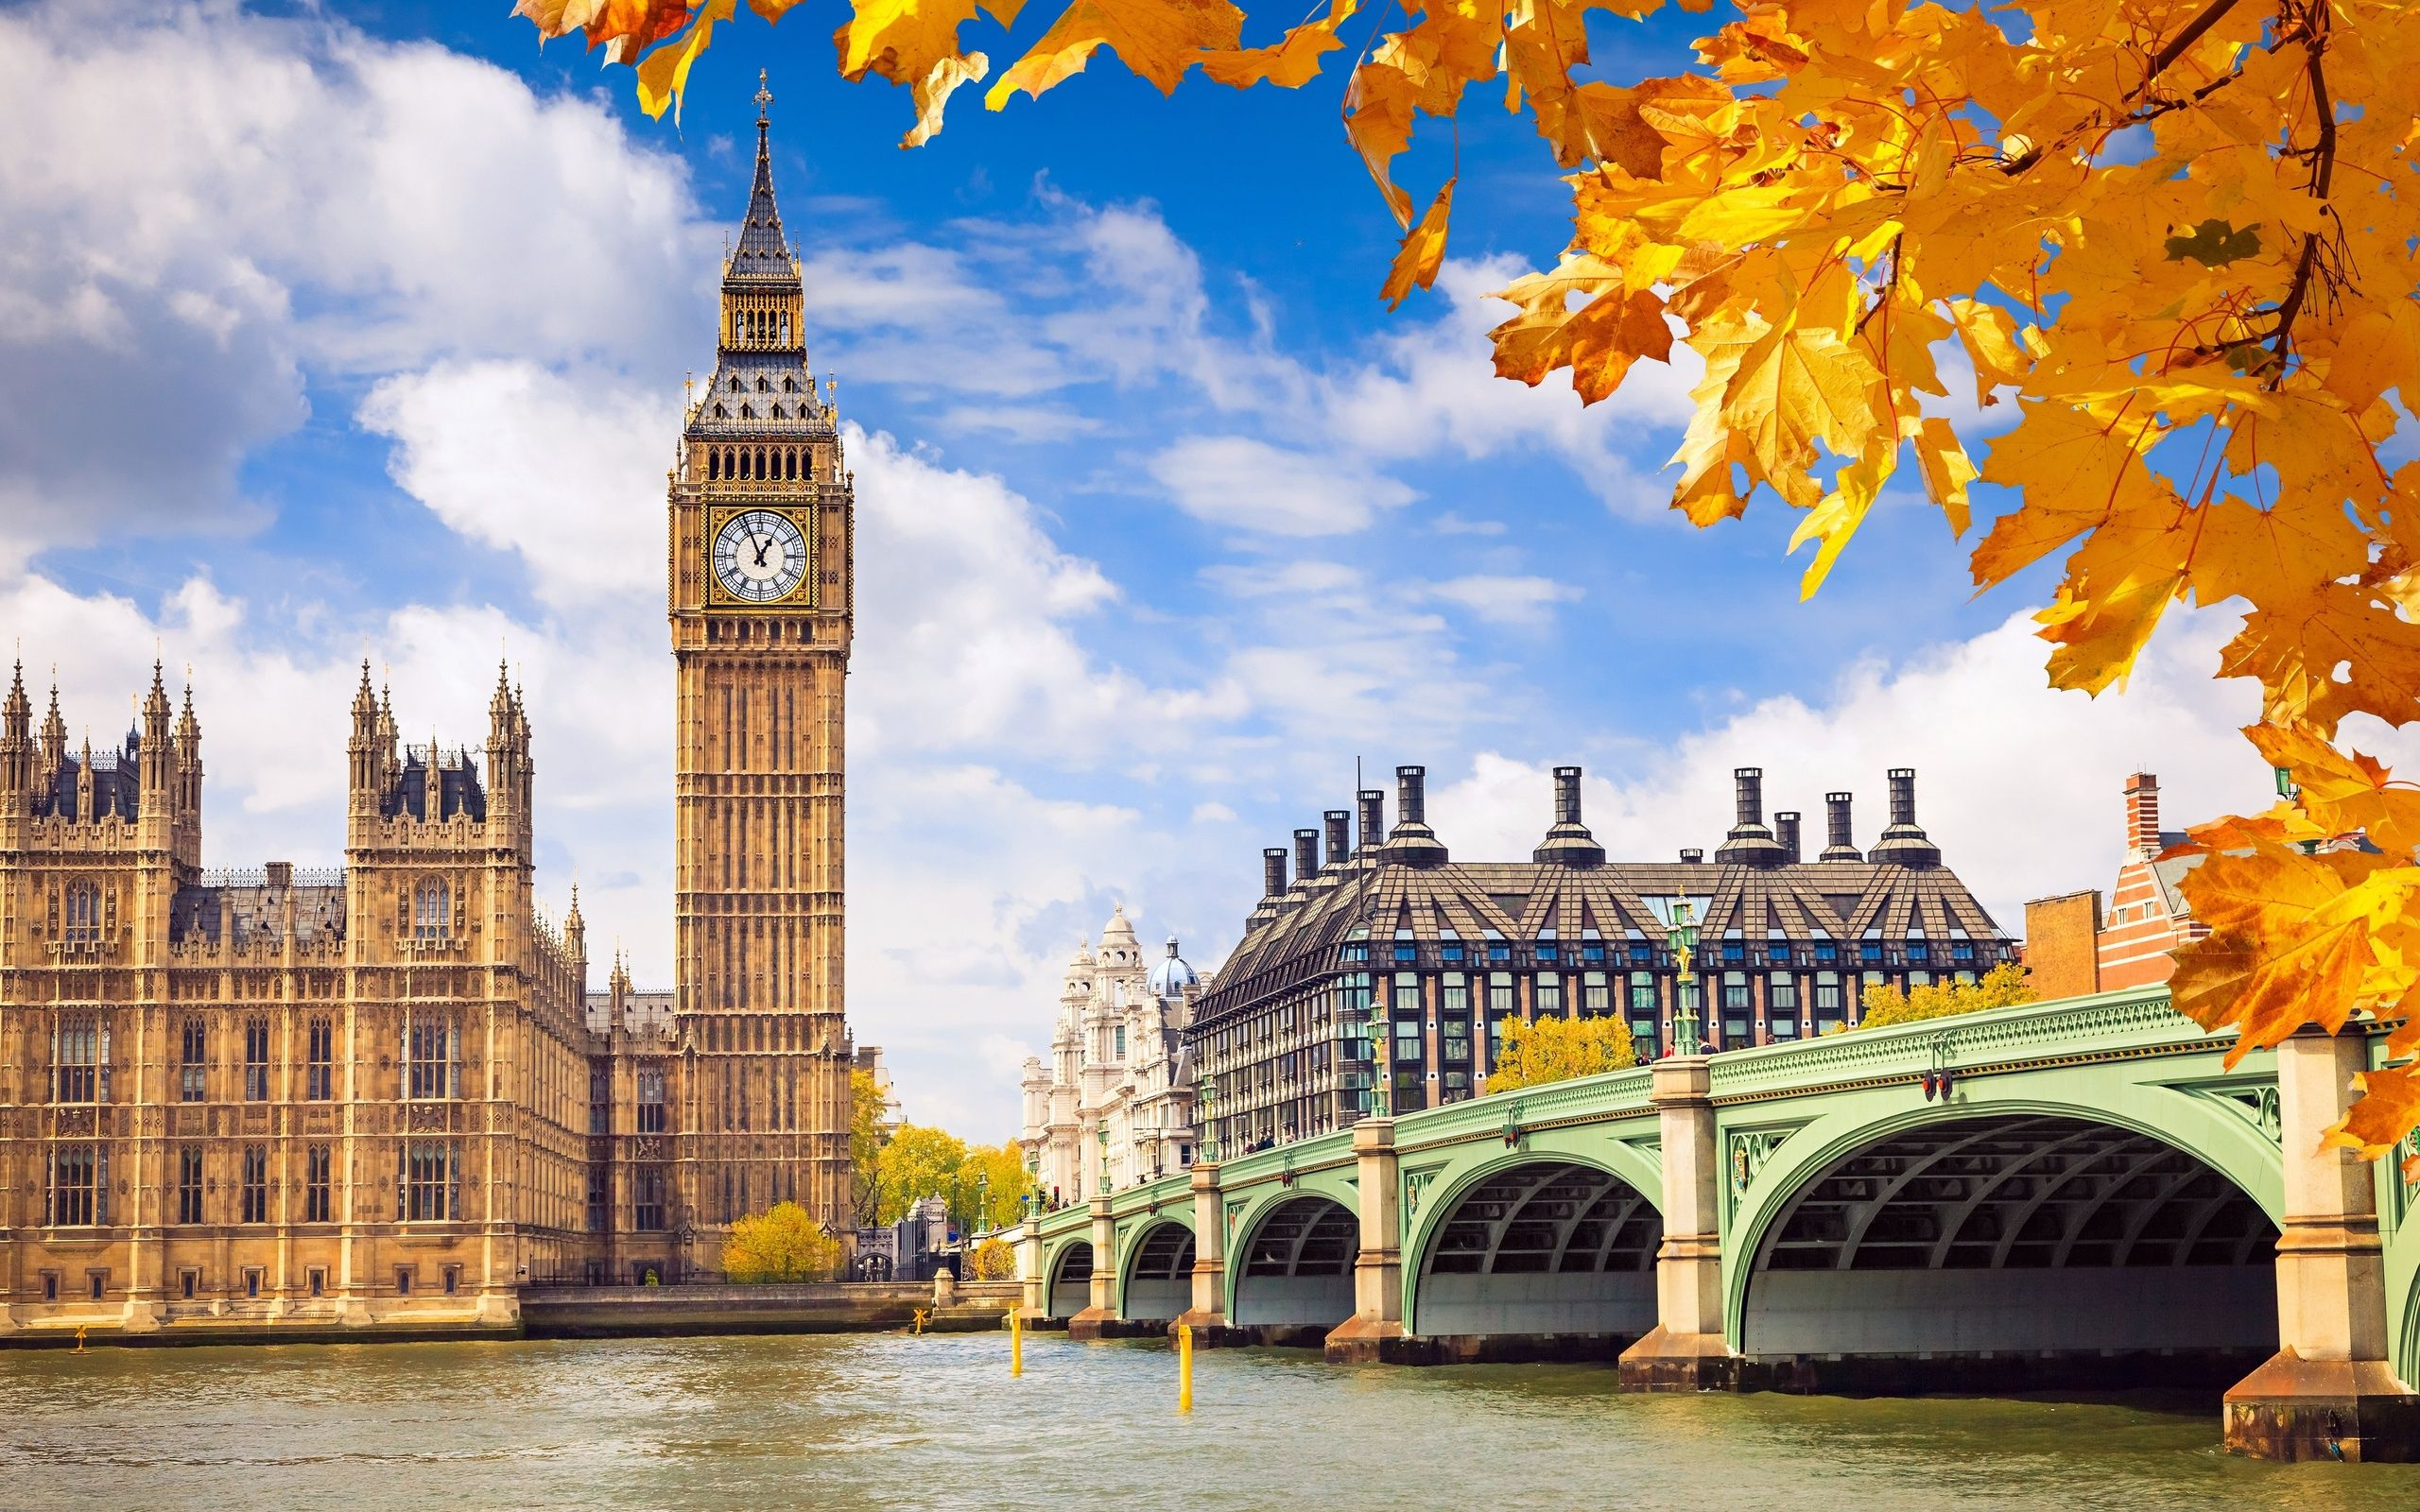 Big Ben London England Wallpapers   Top Big Ben London 2560x1600